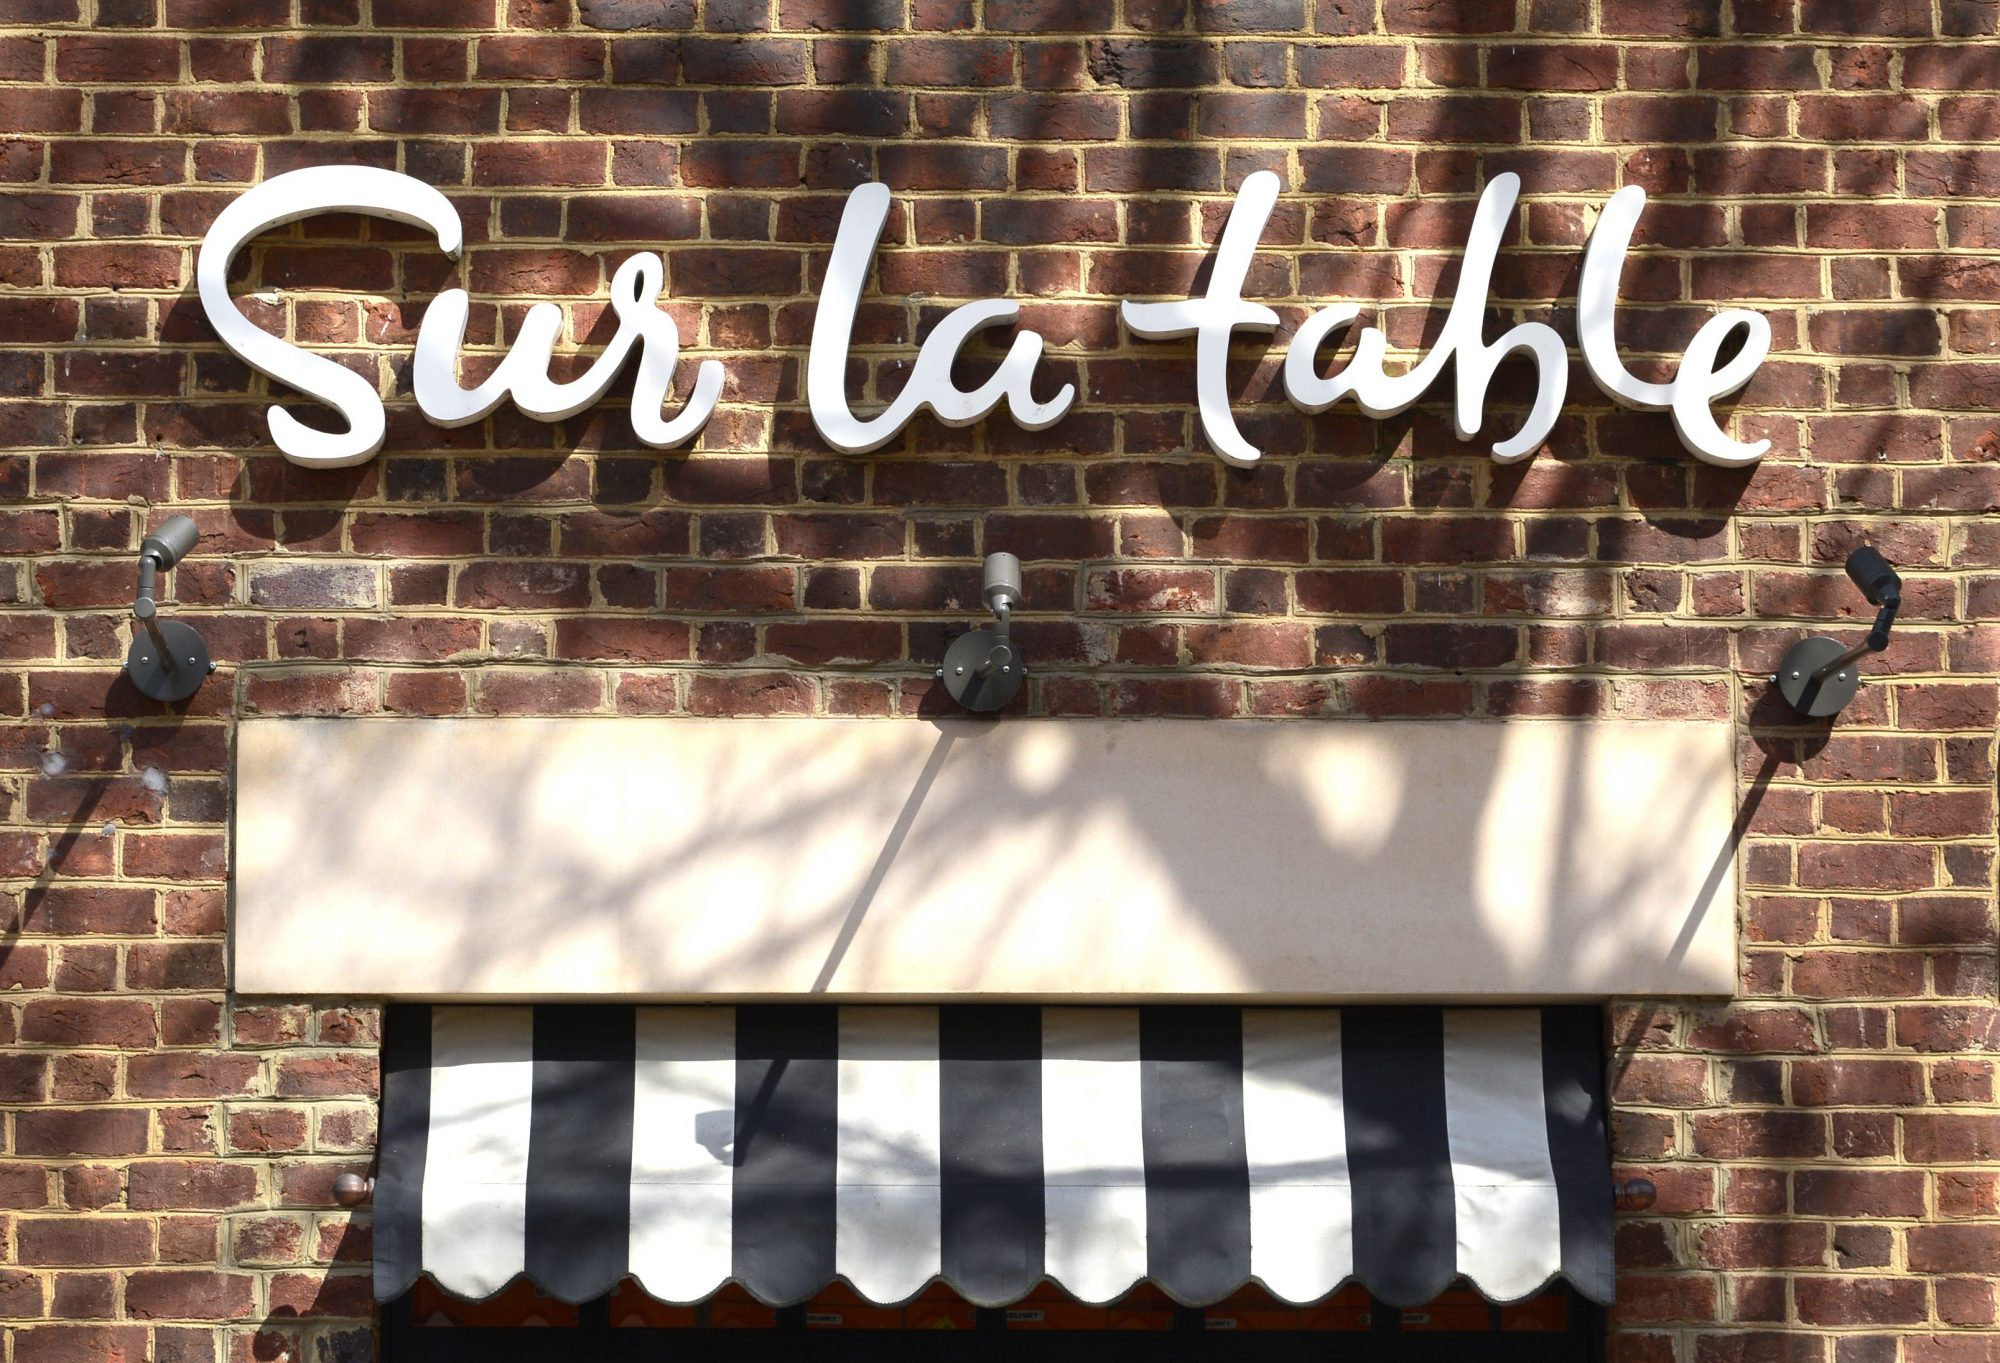 Sur La Table storefront